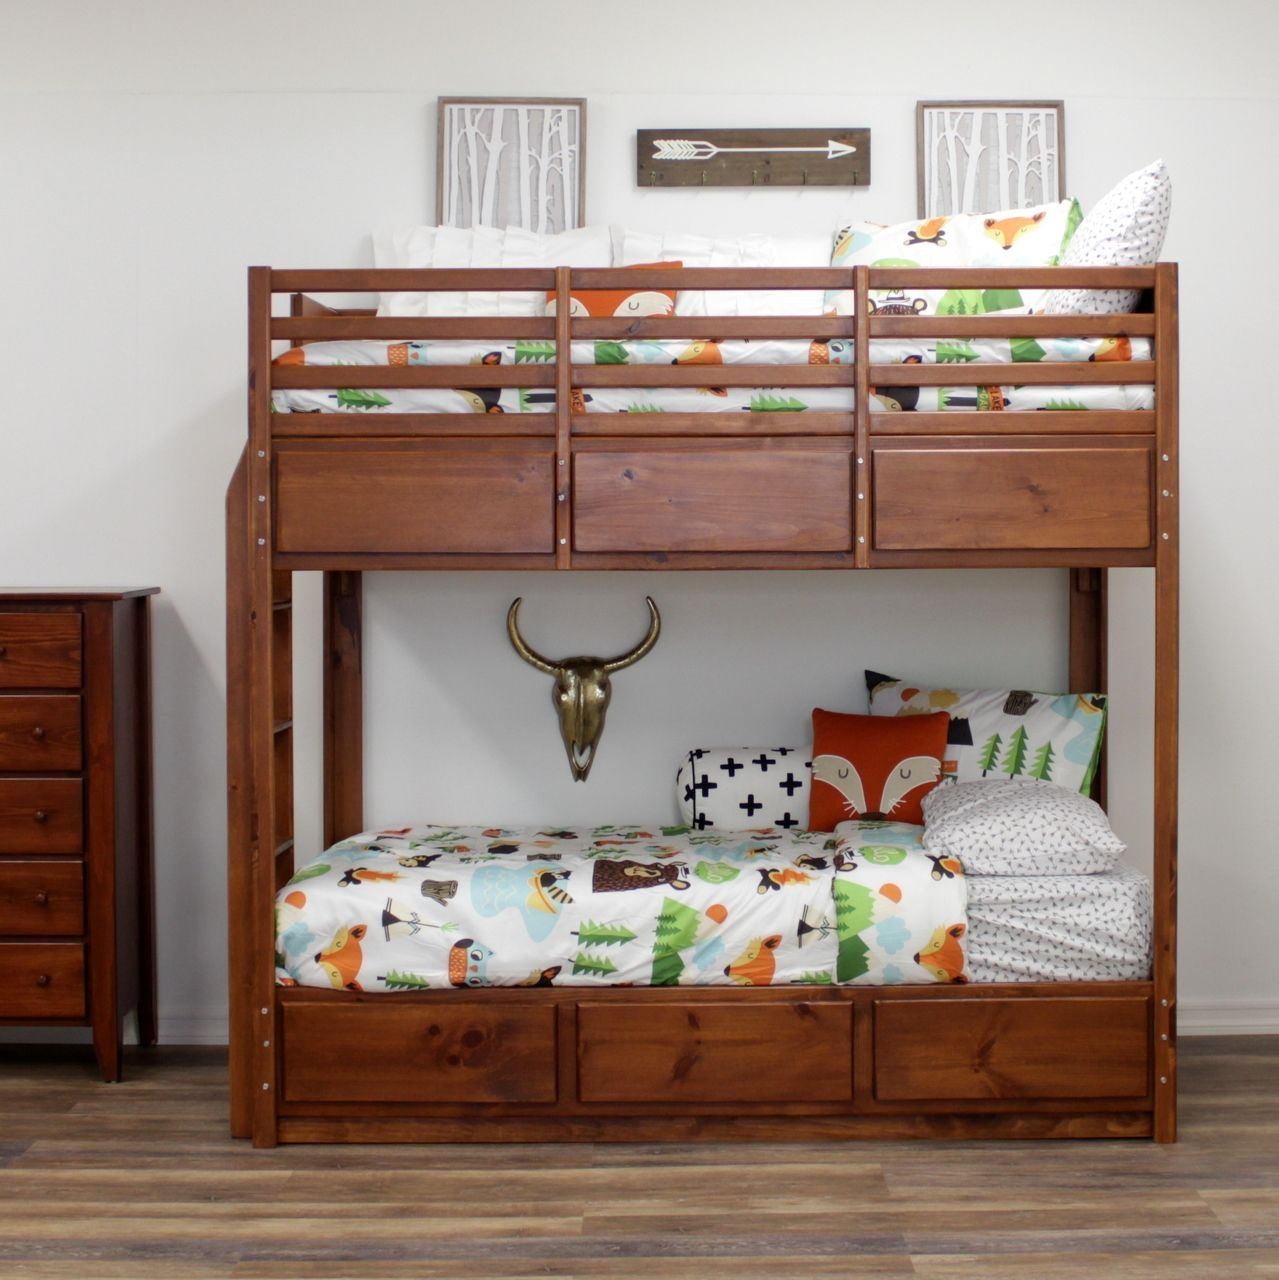 Gothic Cabinet Craft Special Twin Bunk Bed 6 Drawers 899 00 Https Www Gothiccabinetcraft Com Special Twin